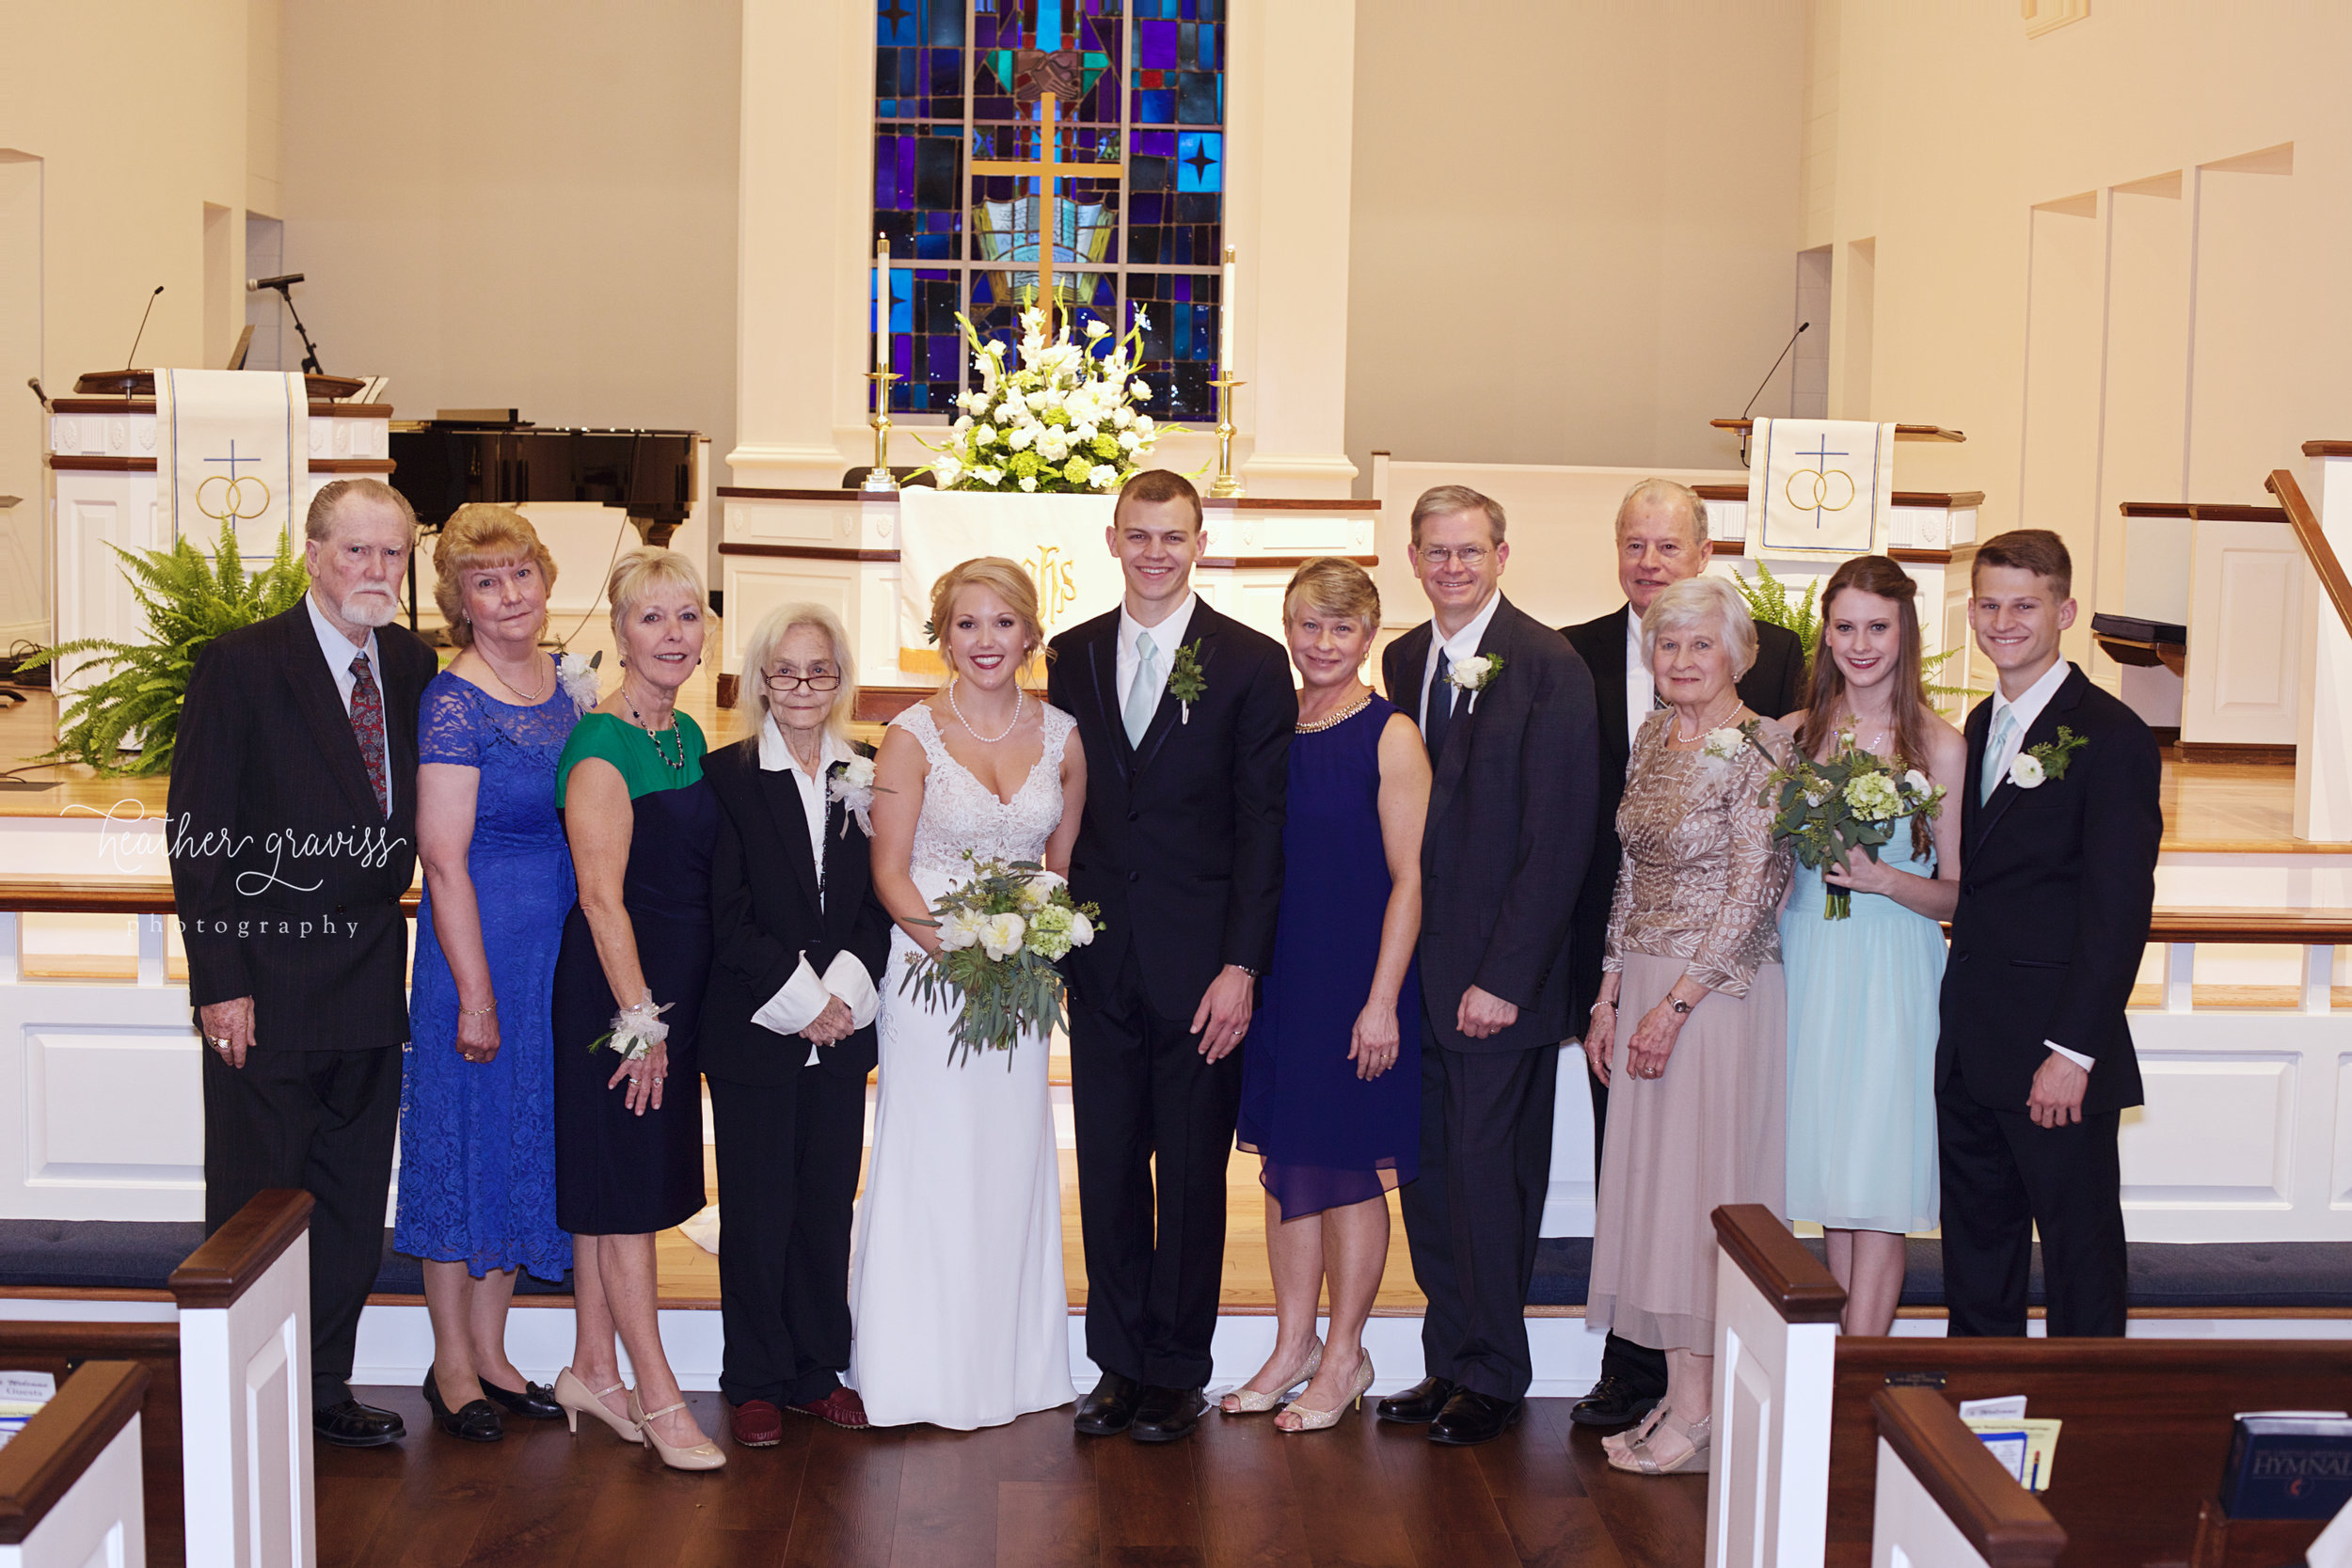 nashville middle tn wedding 103.jpg